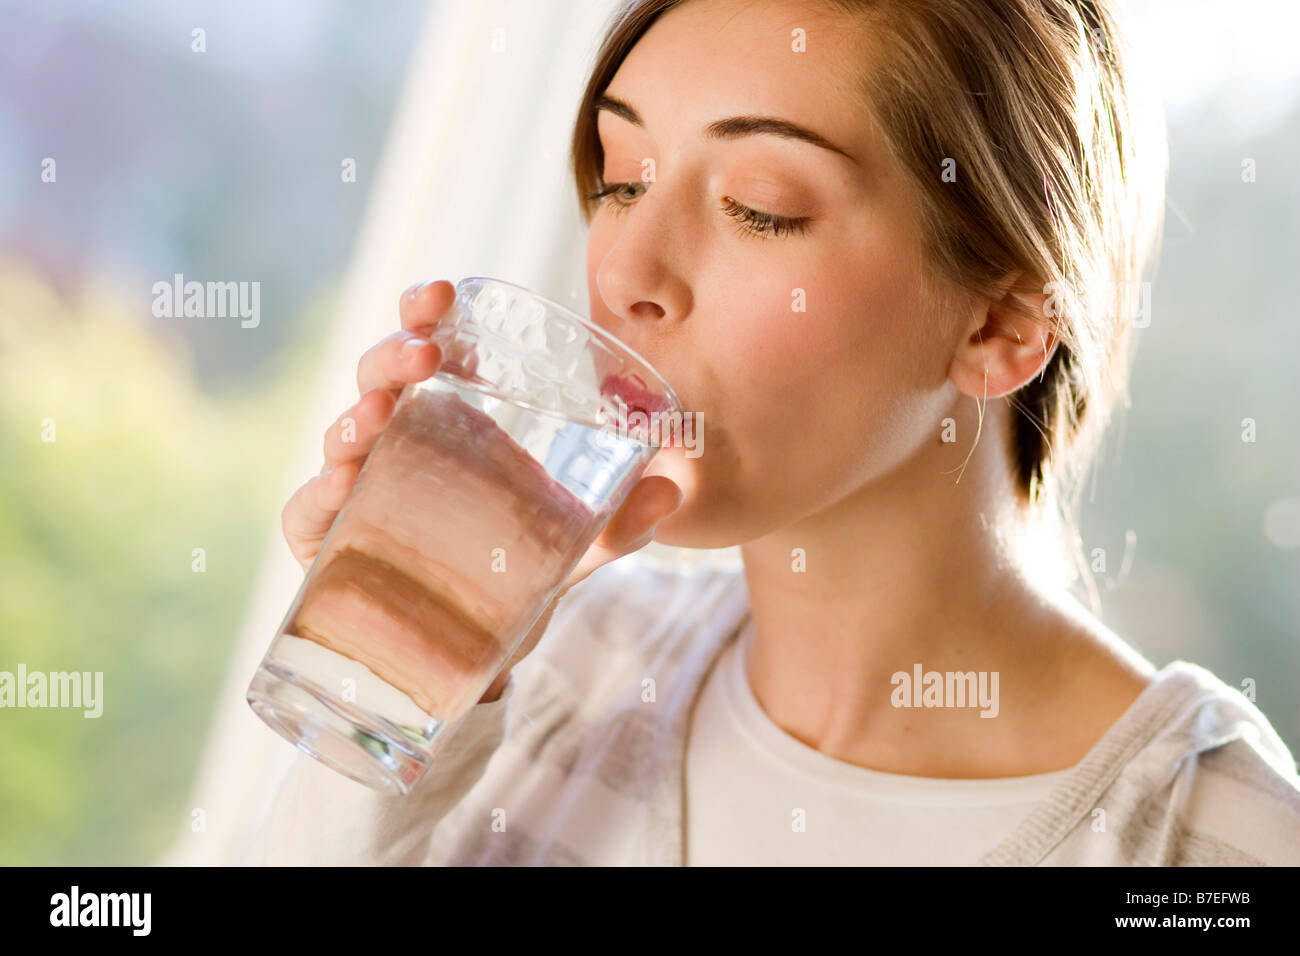 Girl drinking glass of water Banque D'Images